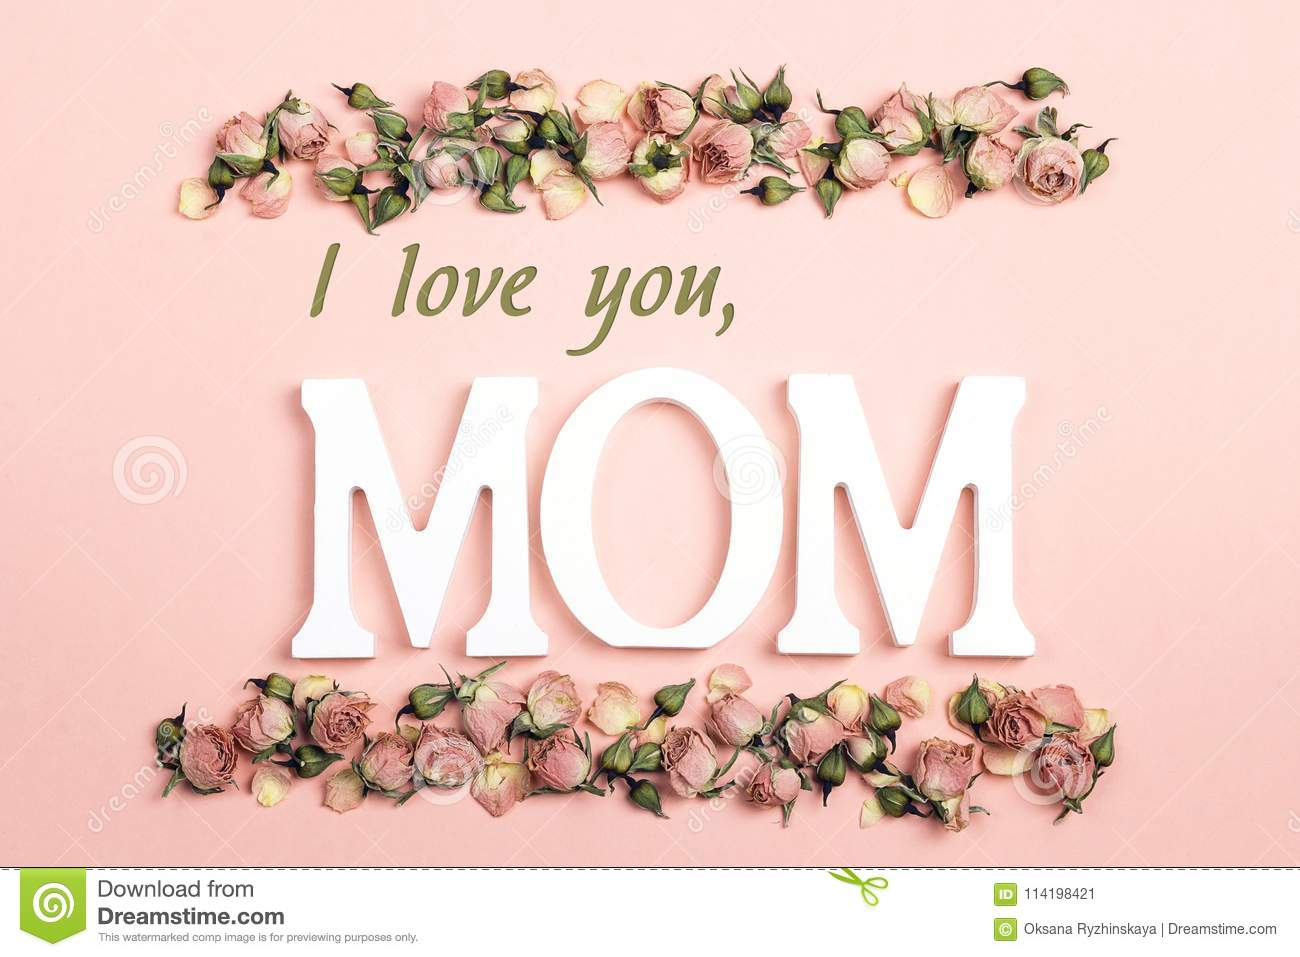 Mothers Day greeting message with small dry roses on pink background. Flat lay, top view.